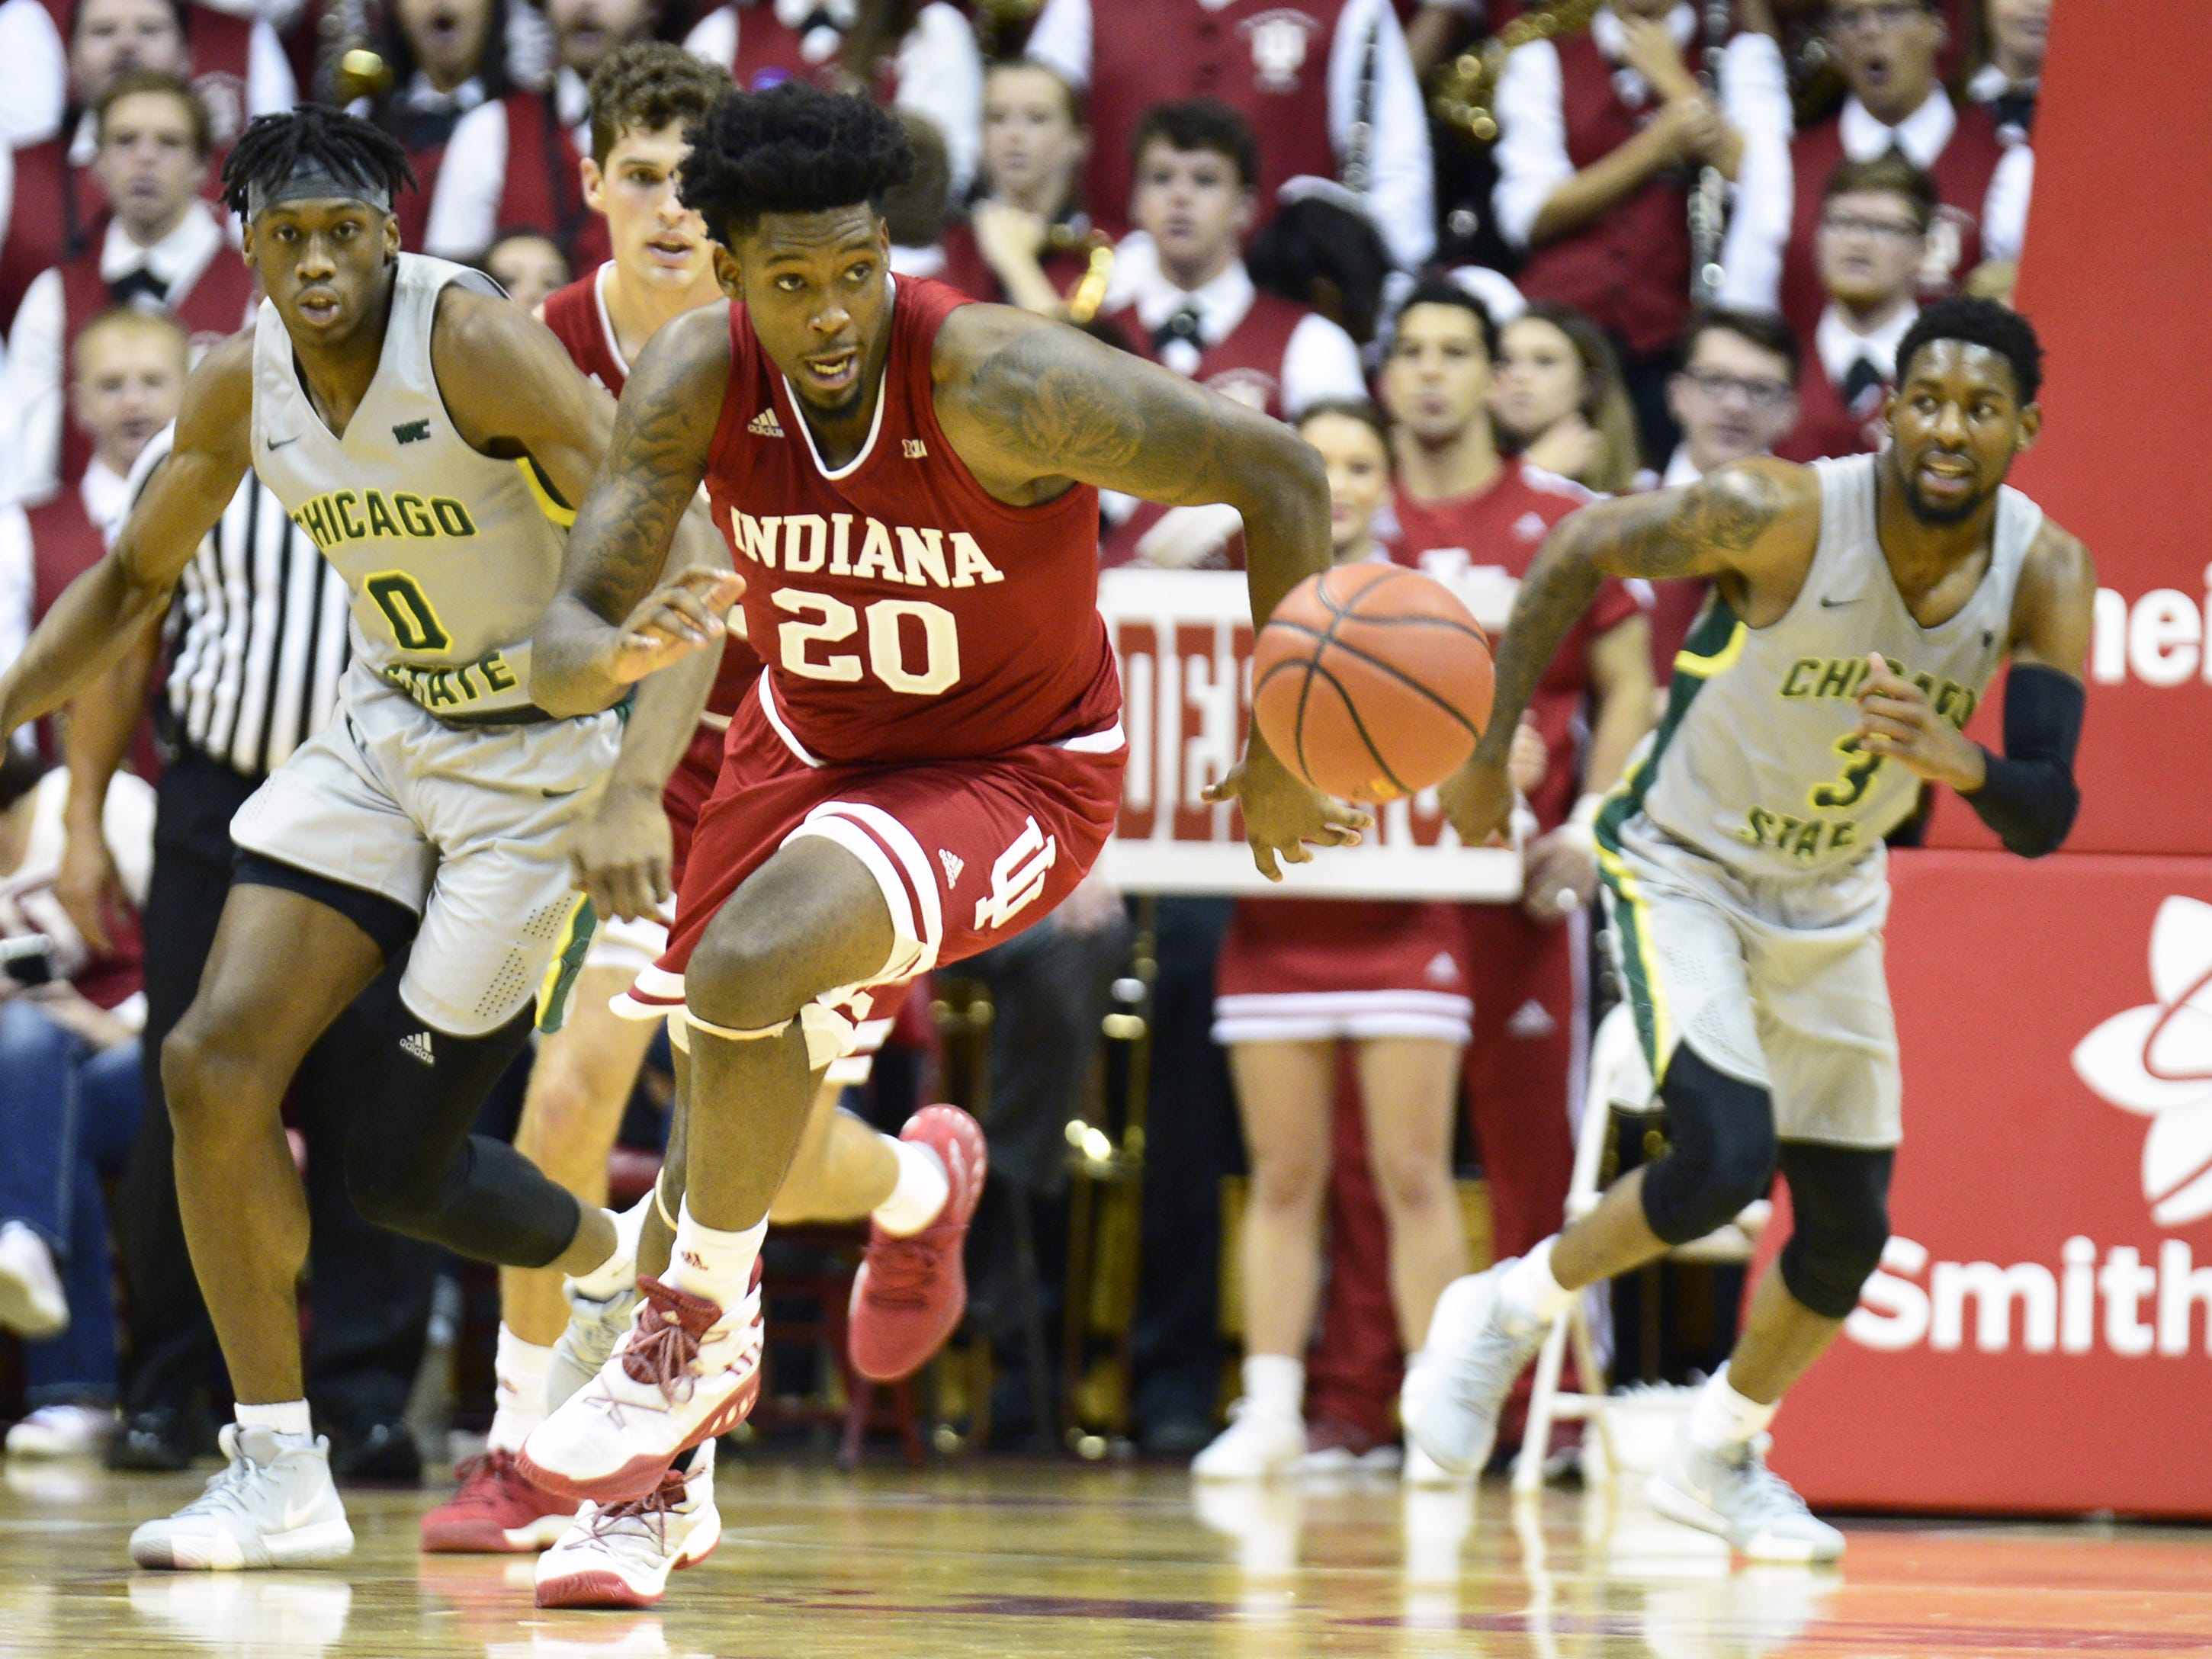 Indiana Hoosiers forward De'Ron Davis (20) runs for a loose ball during the game against Chicago State at Simon Skjodt Assembly Hall in Bloomington, Ind., on Tuesday, Nov. 6, 2018.